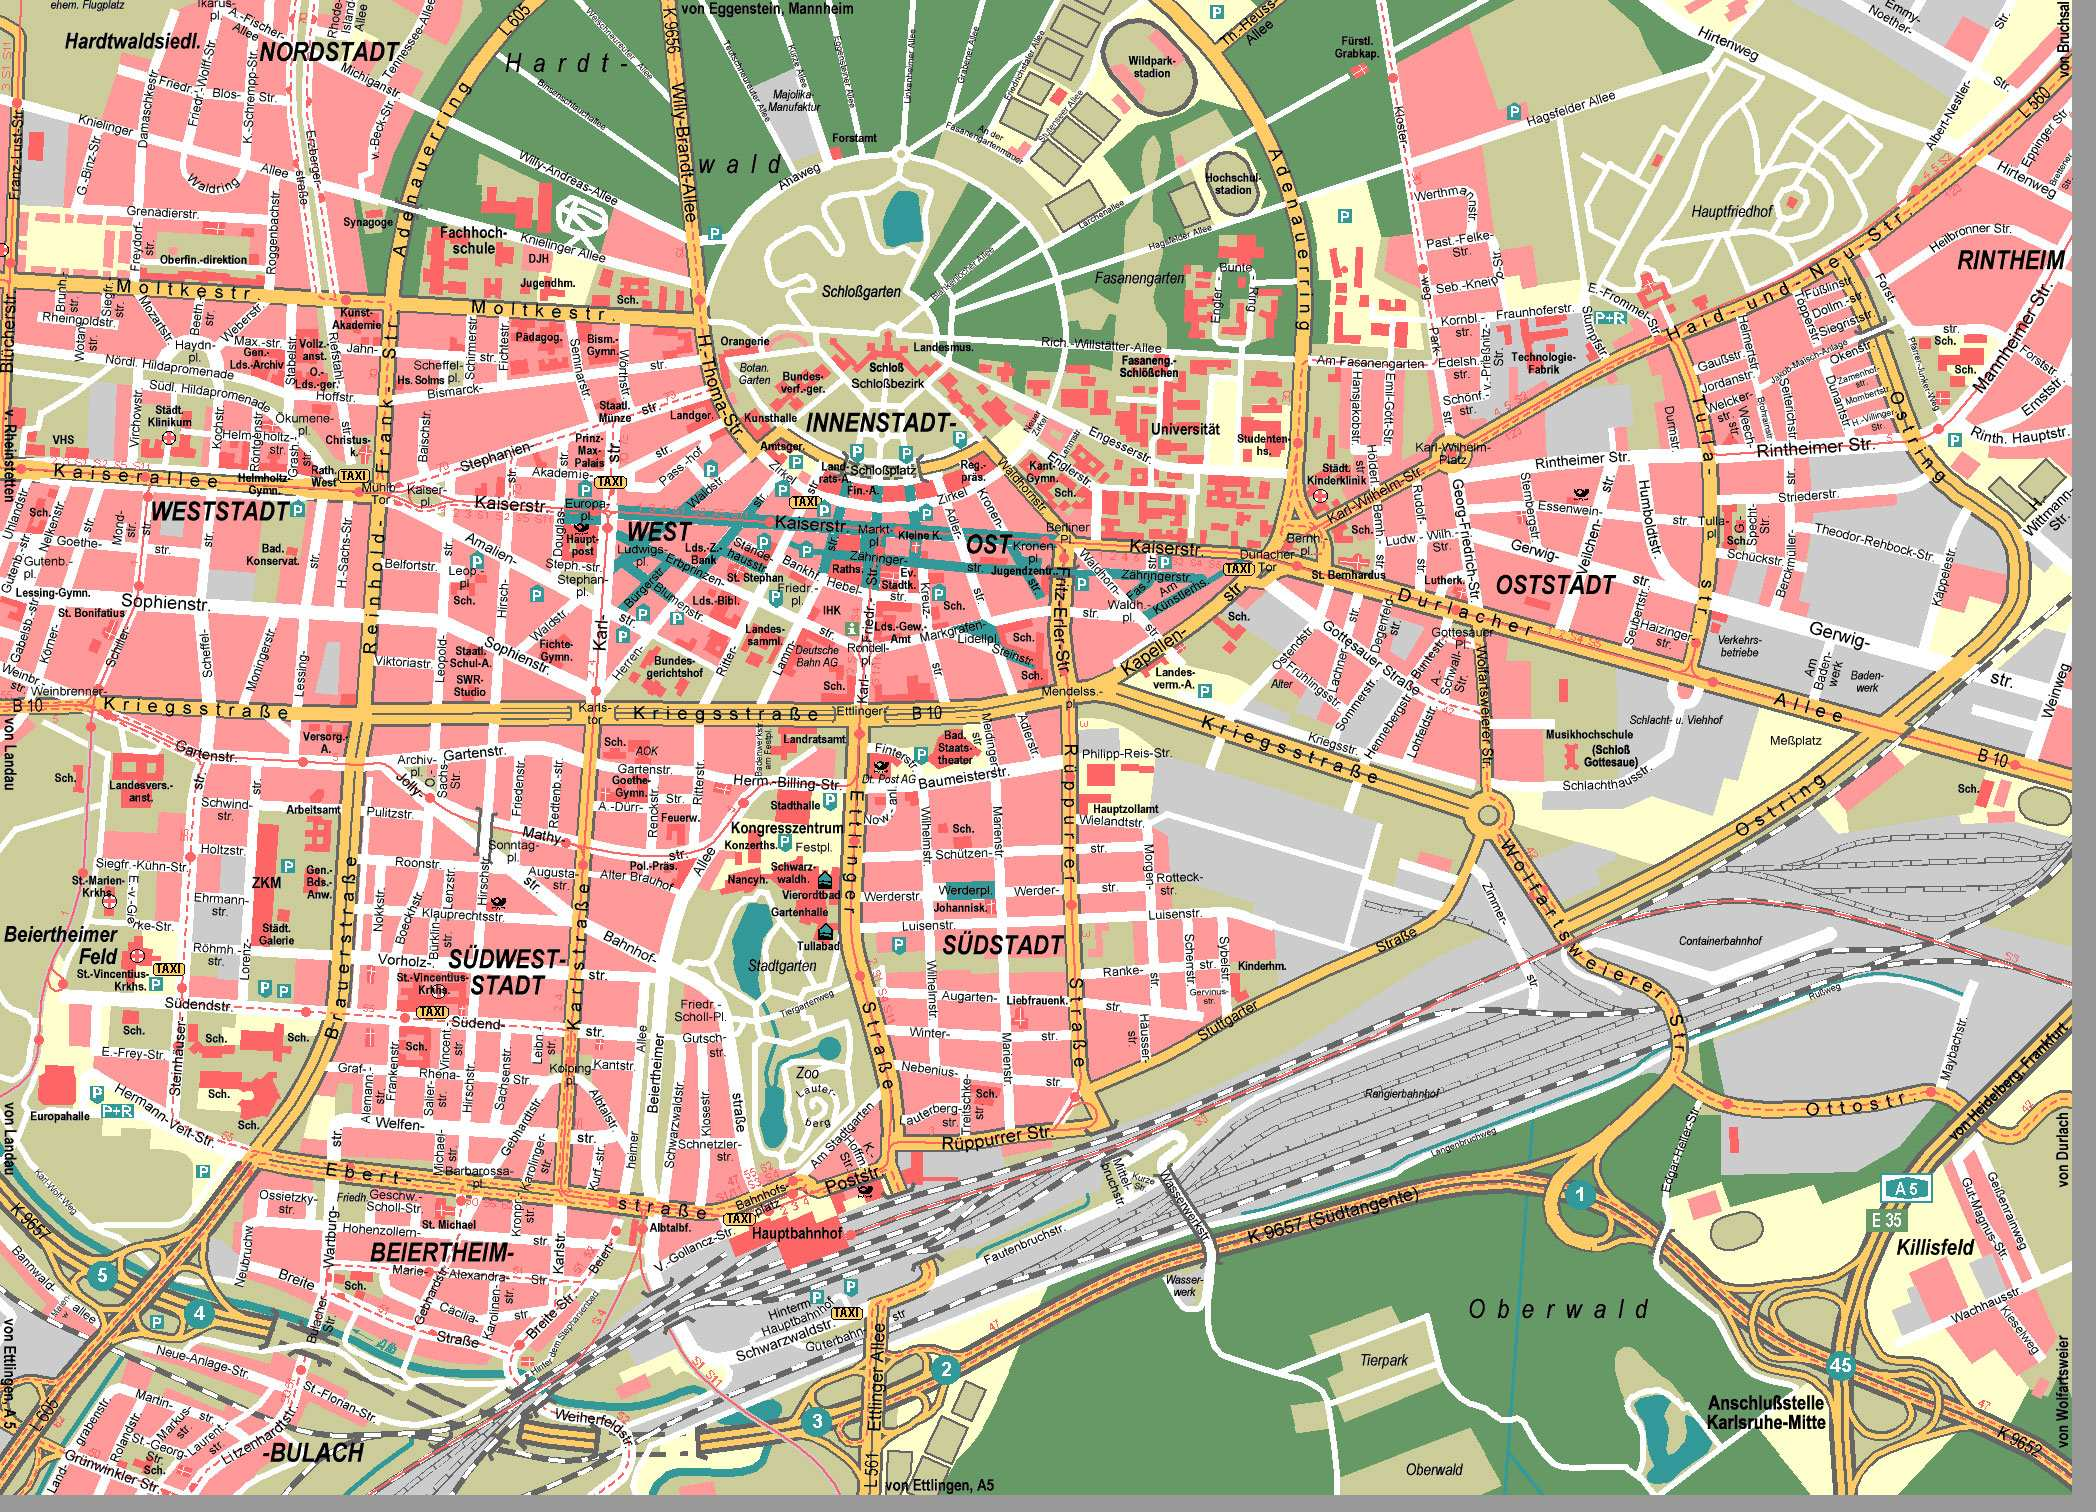 Large Karlsruhe Maps For Free Download And Print HighResolution - Germany map download